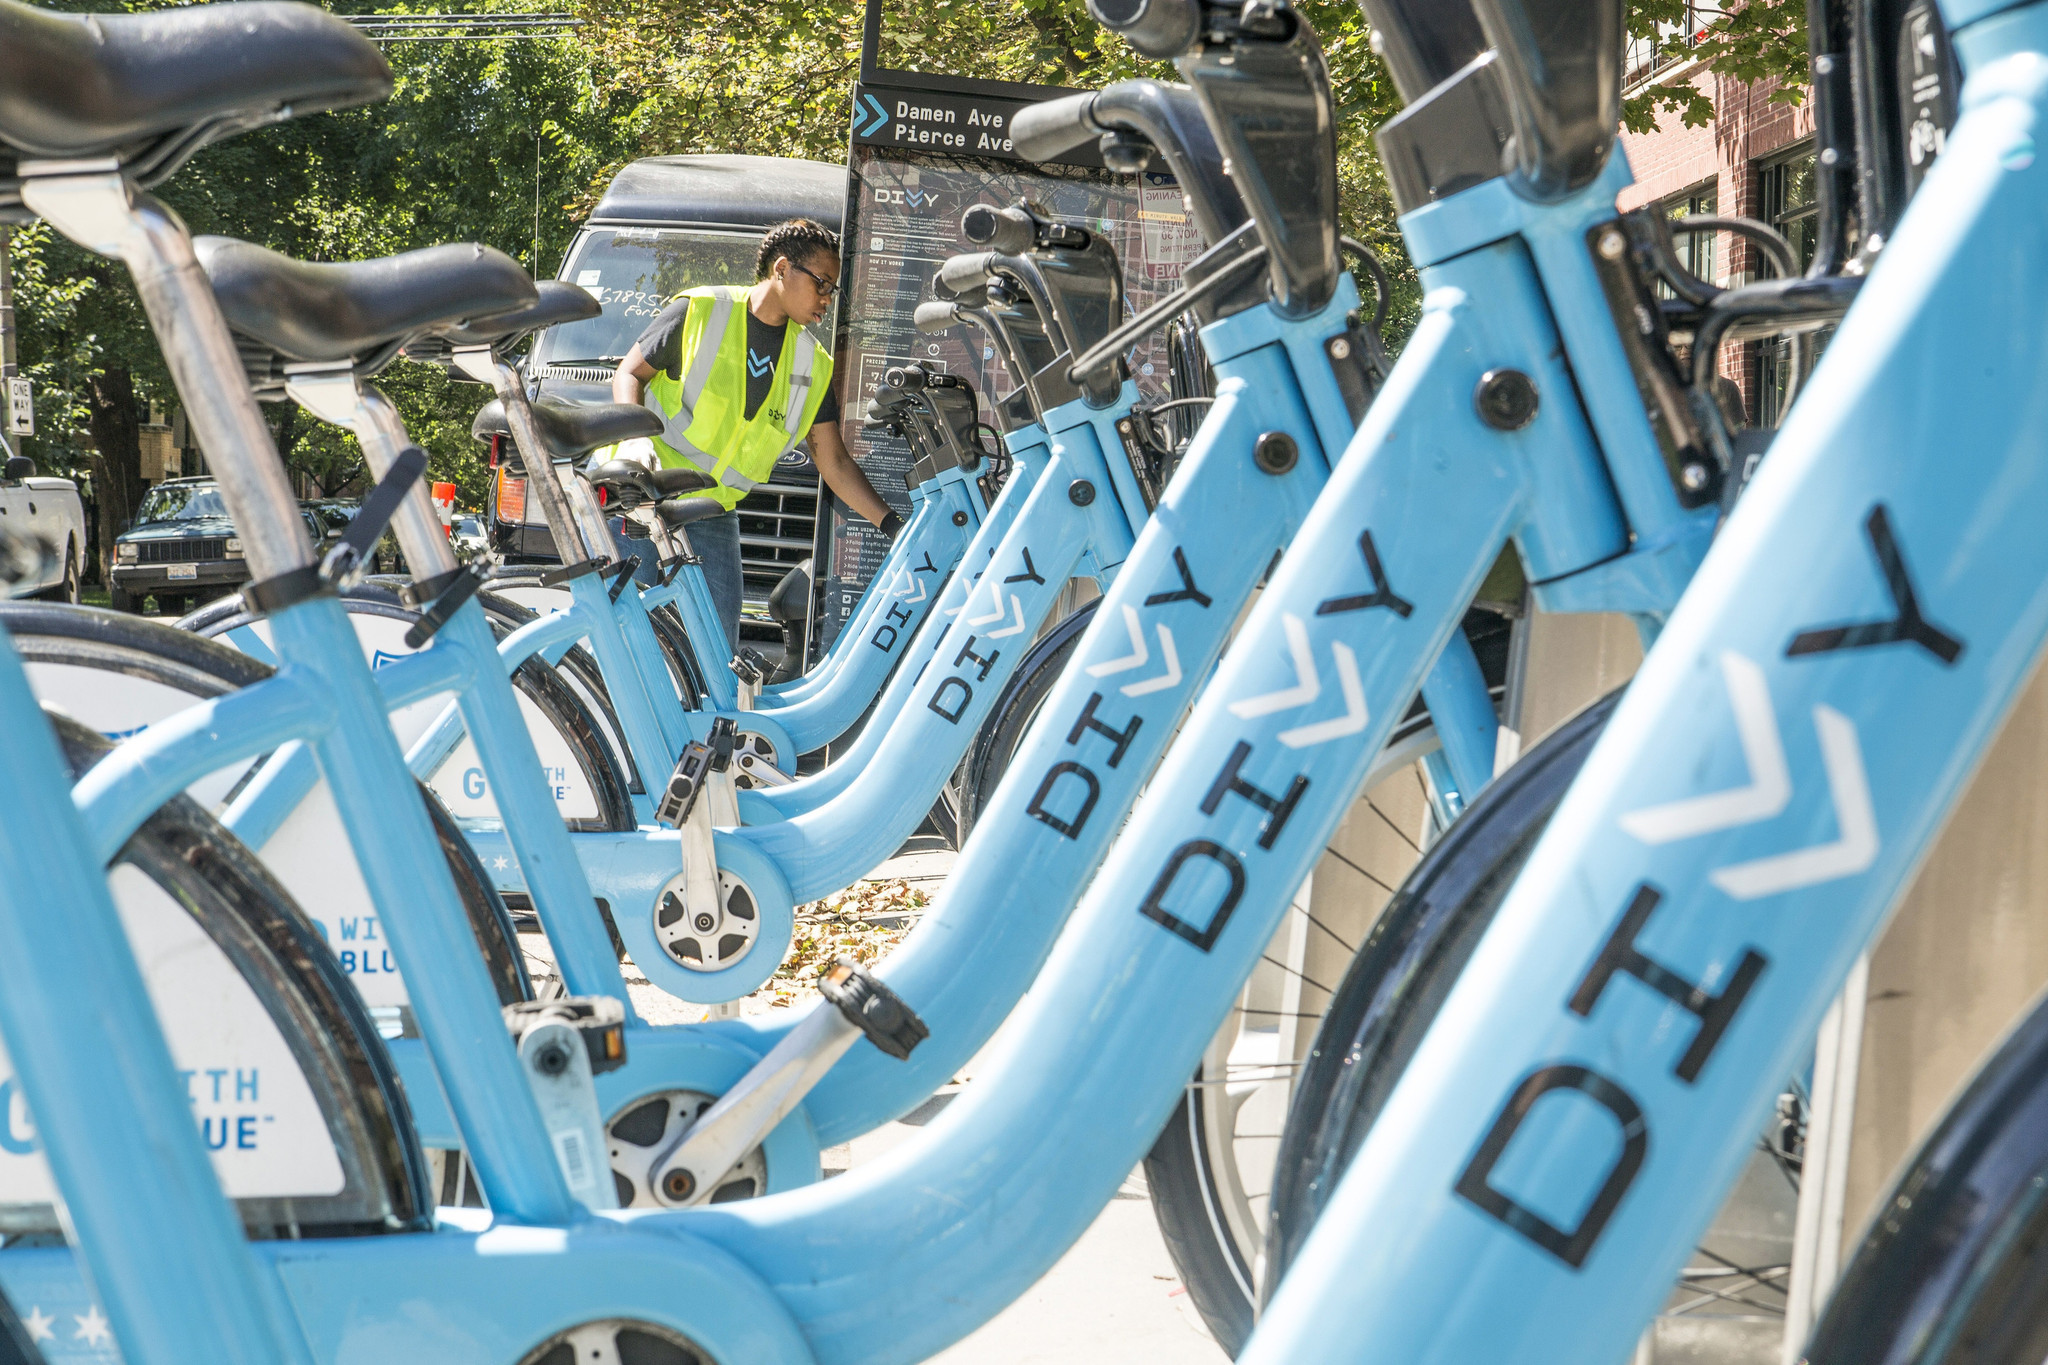 Bike Sales Chicago operates Divvy bike share